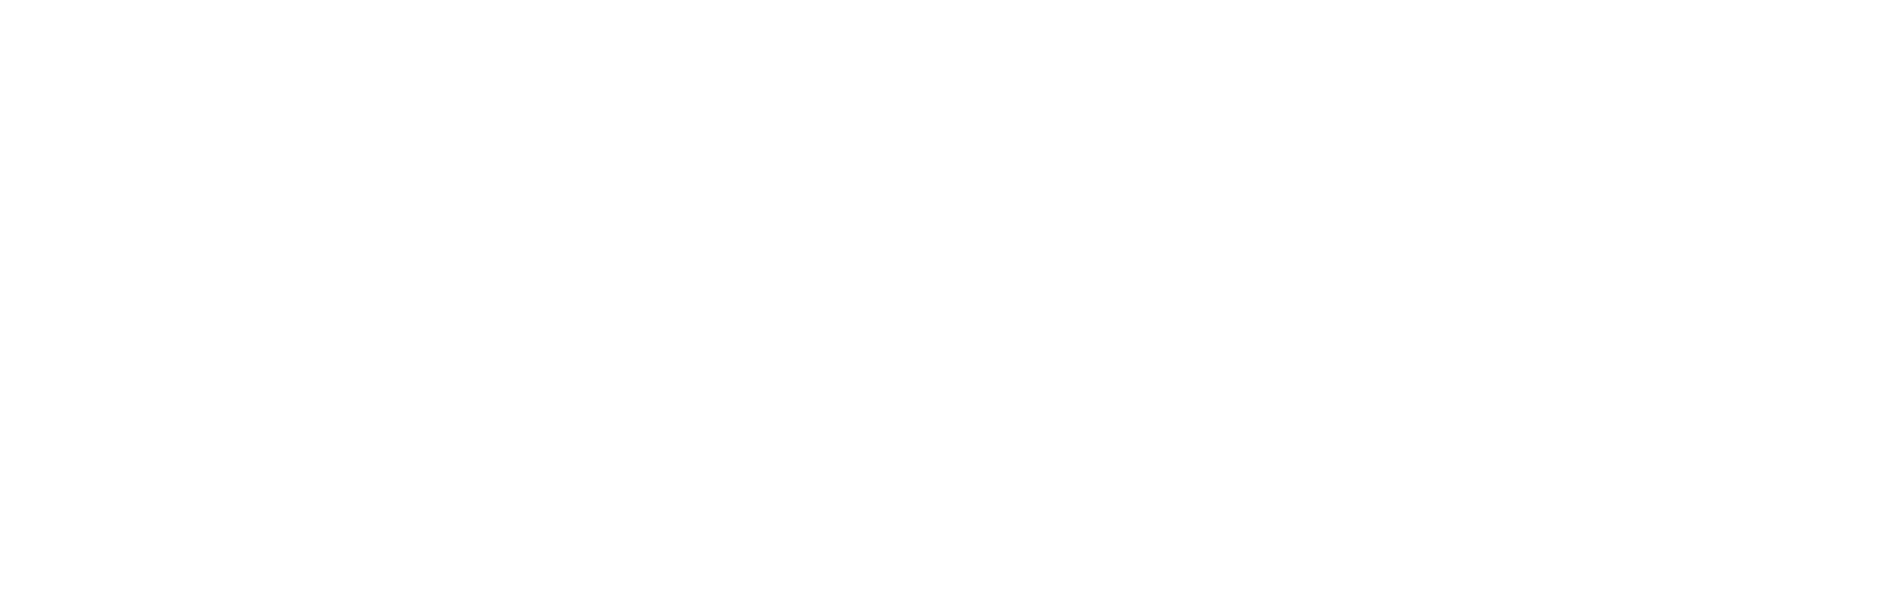 Family First Chiropractic Logo